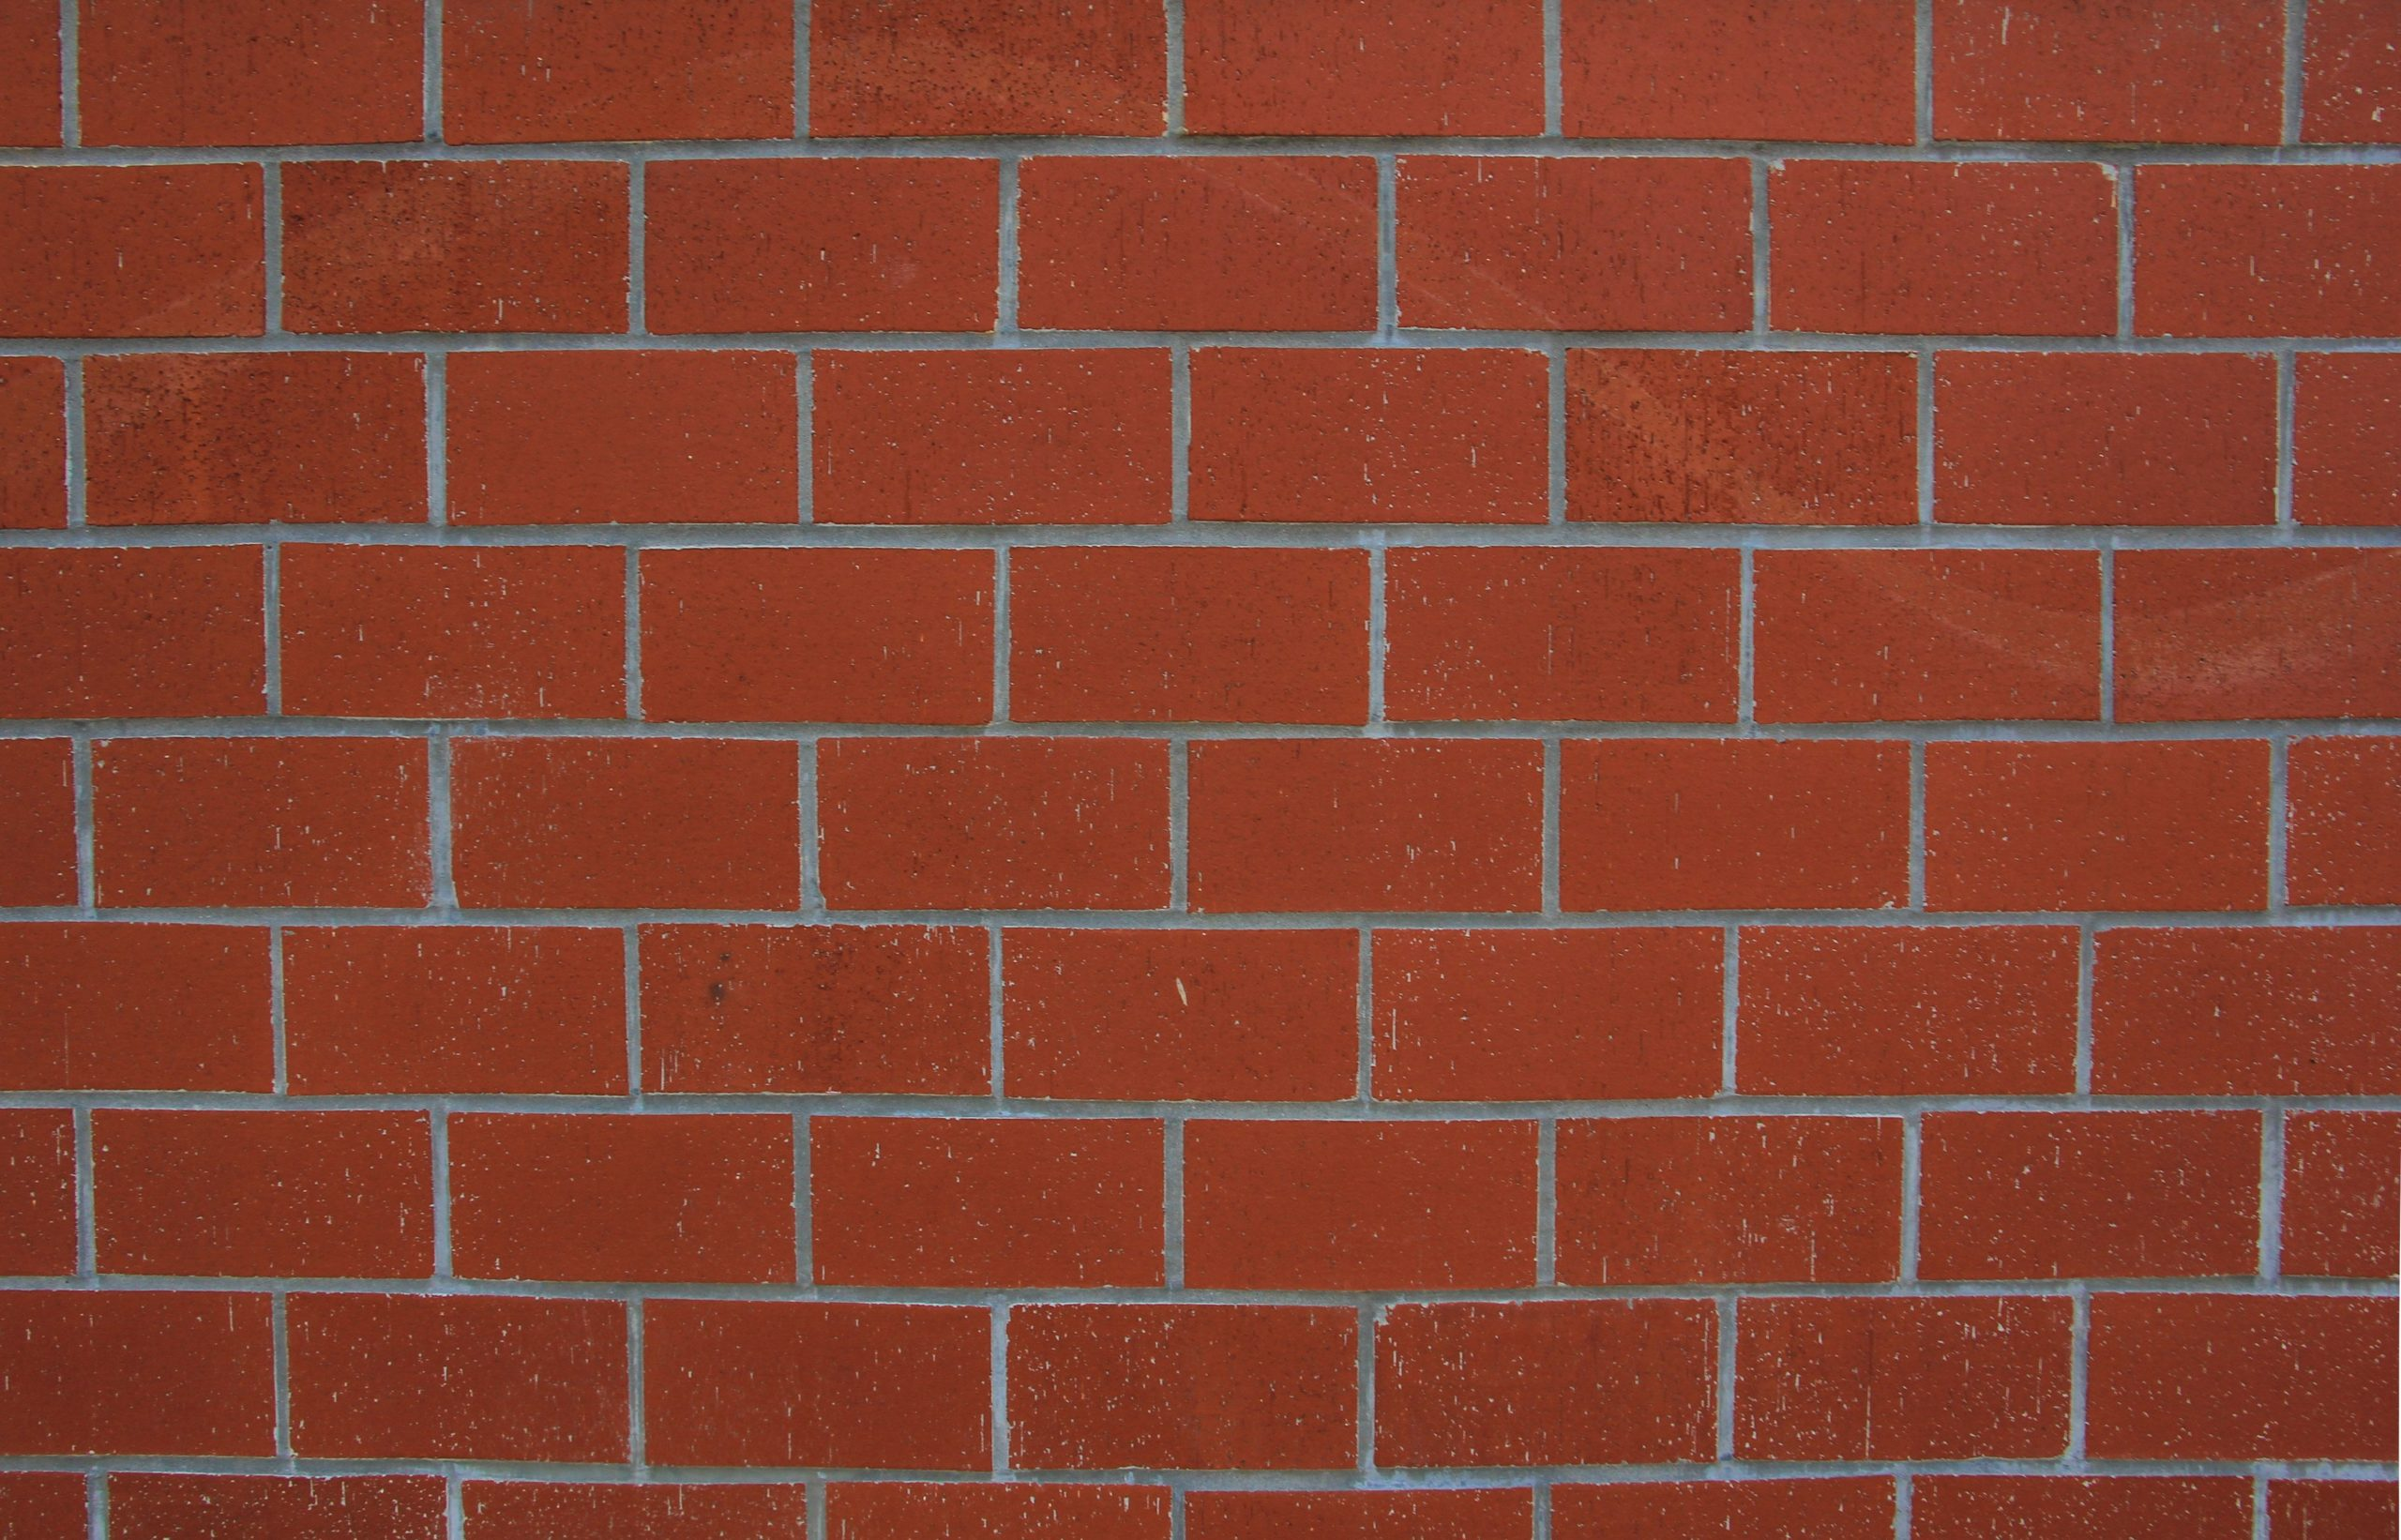 brick wall images